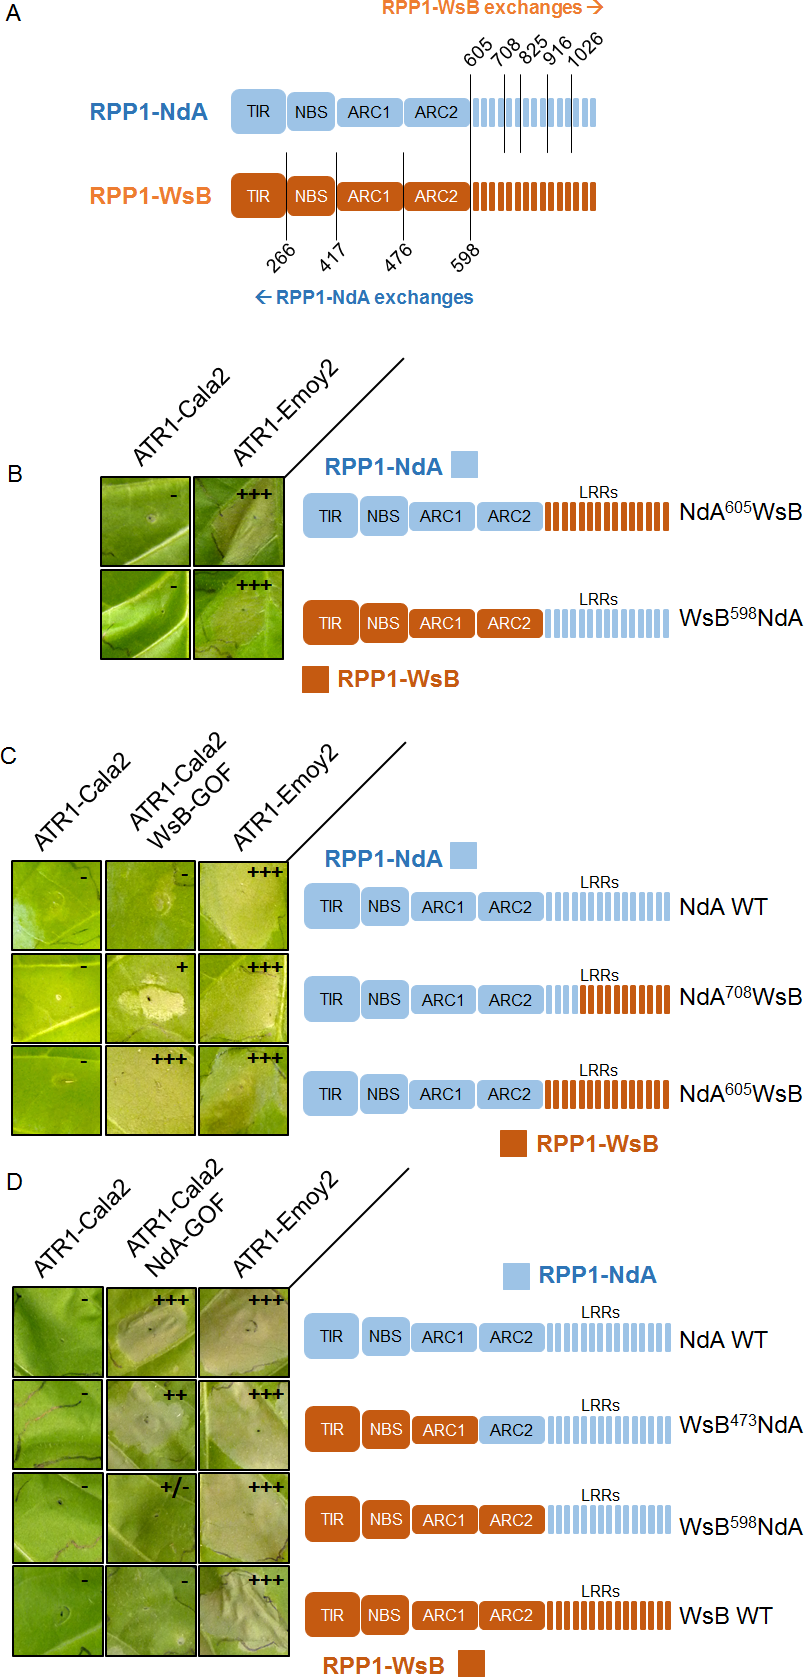 Chimeric RPP1 constructs implicate LRRs and ARC2 domains in specificity.